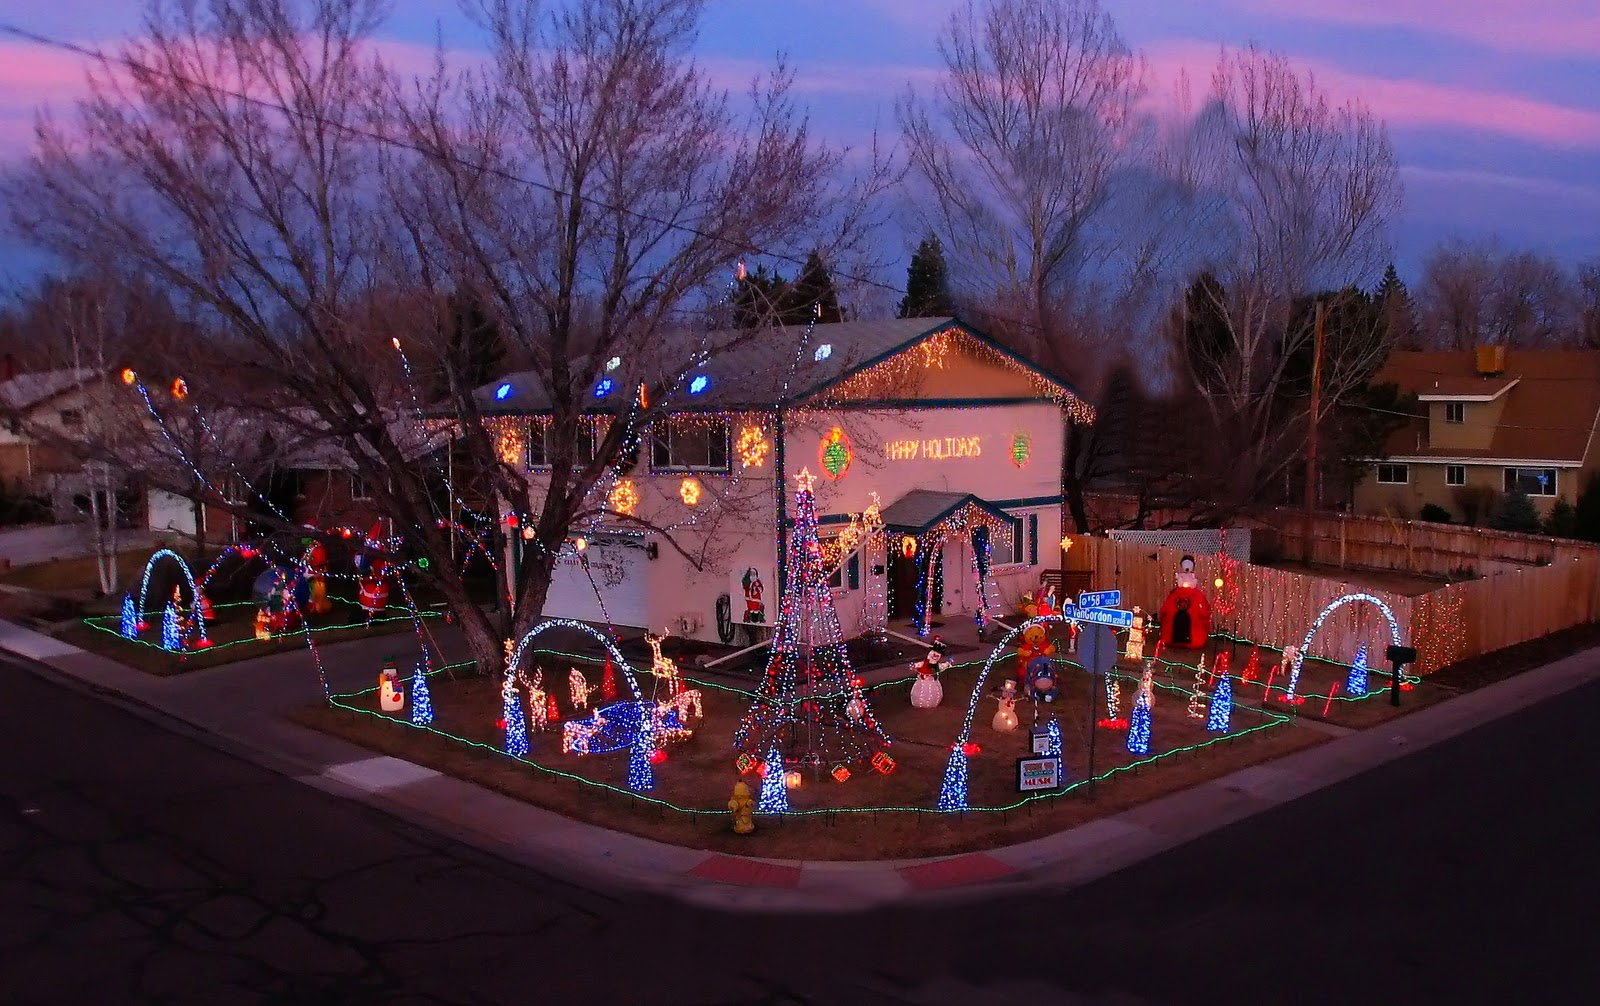 arvada residents tom and ed are hosting their 5th annual holiday light display through january 7 2011 37000 computer controlled holiday lights adorn